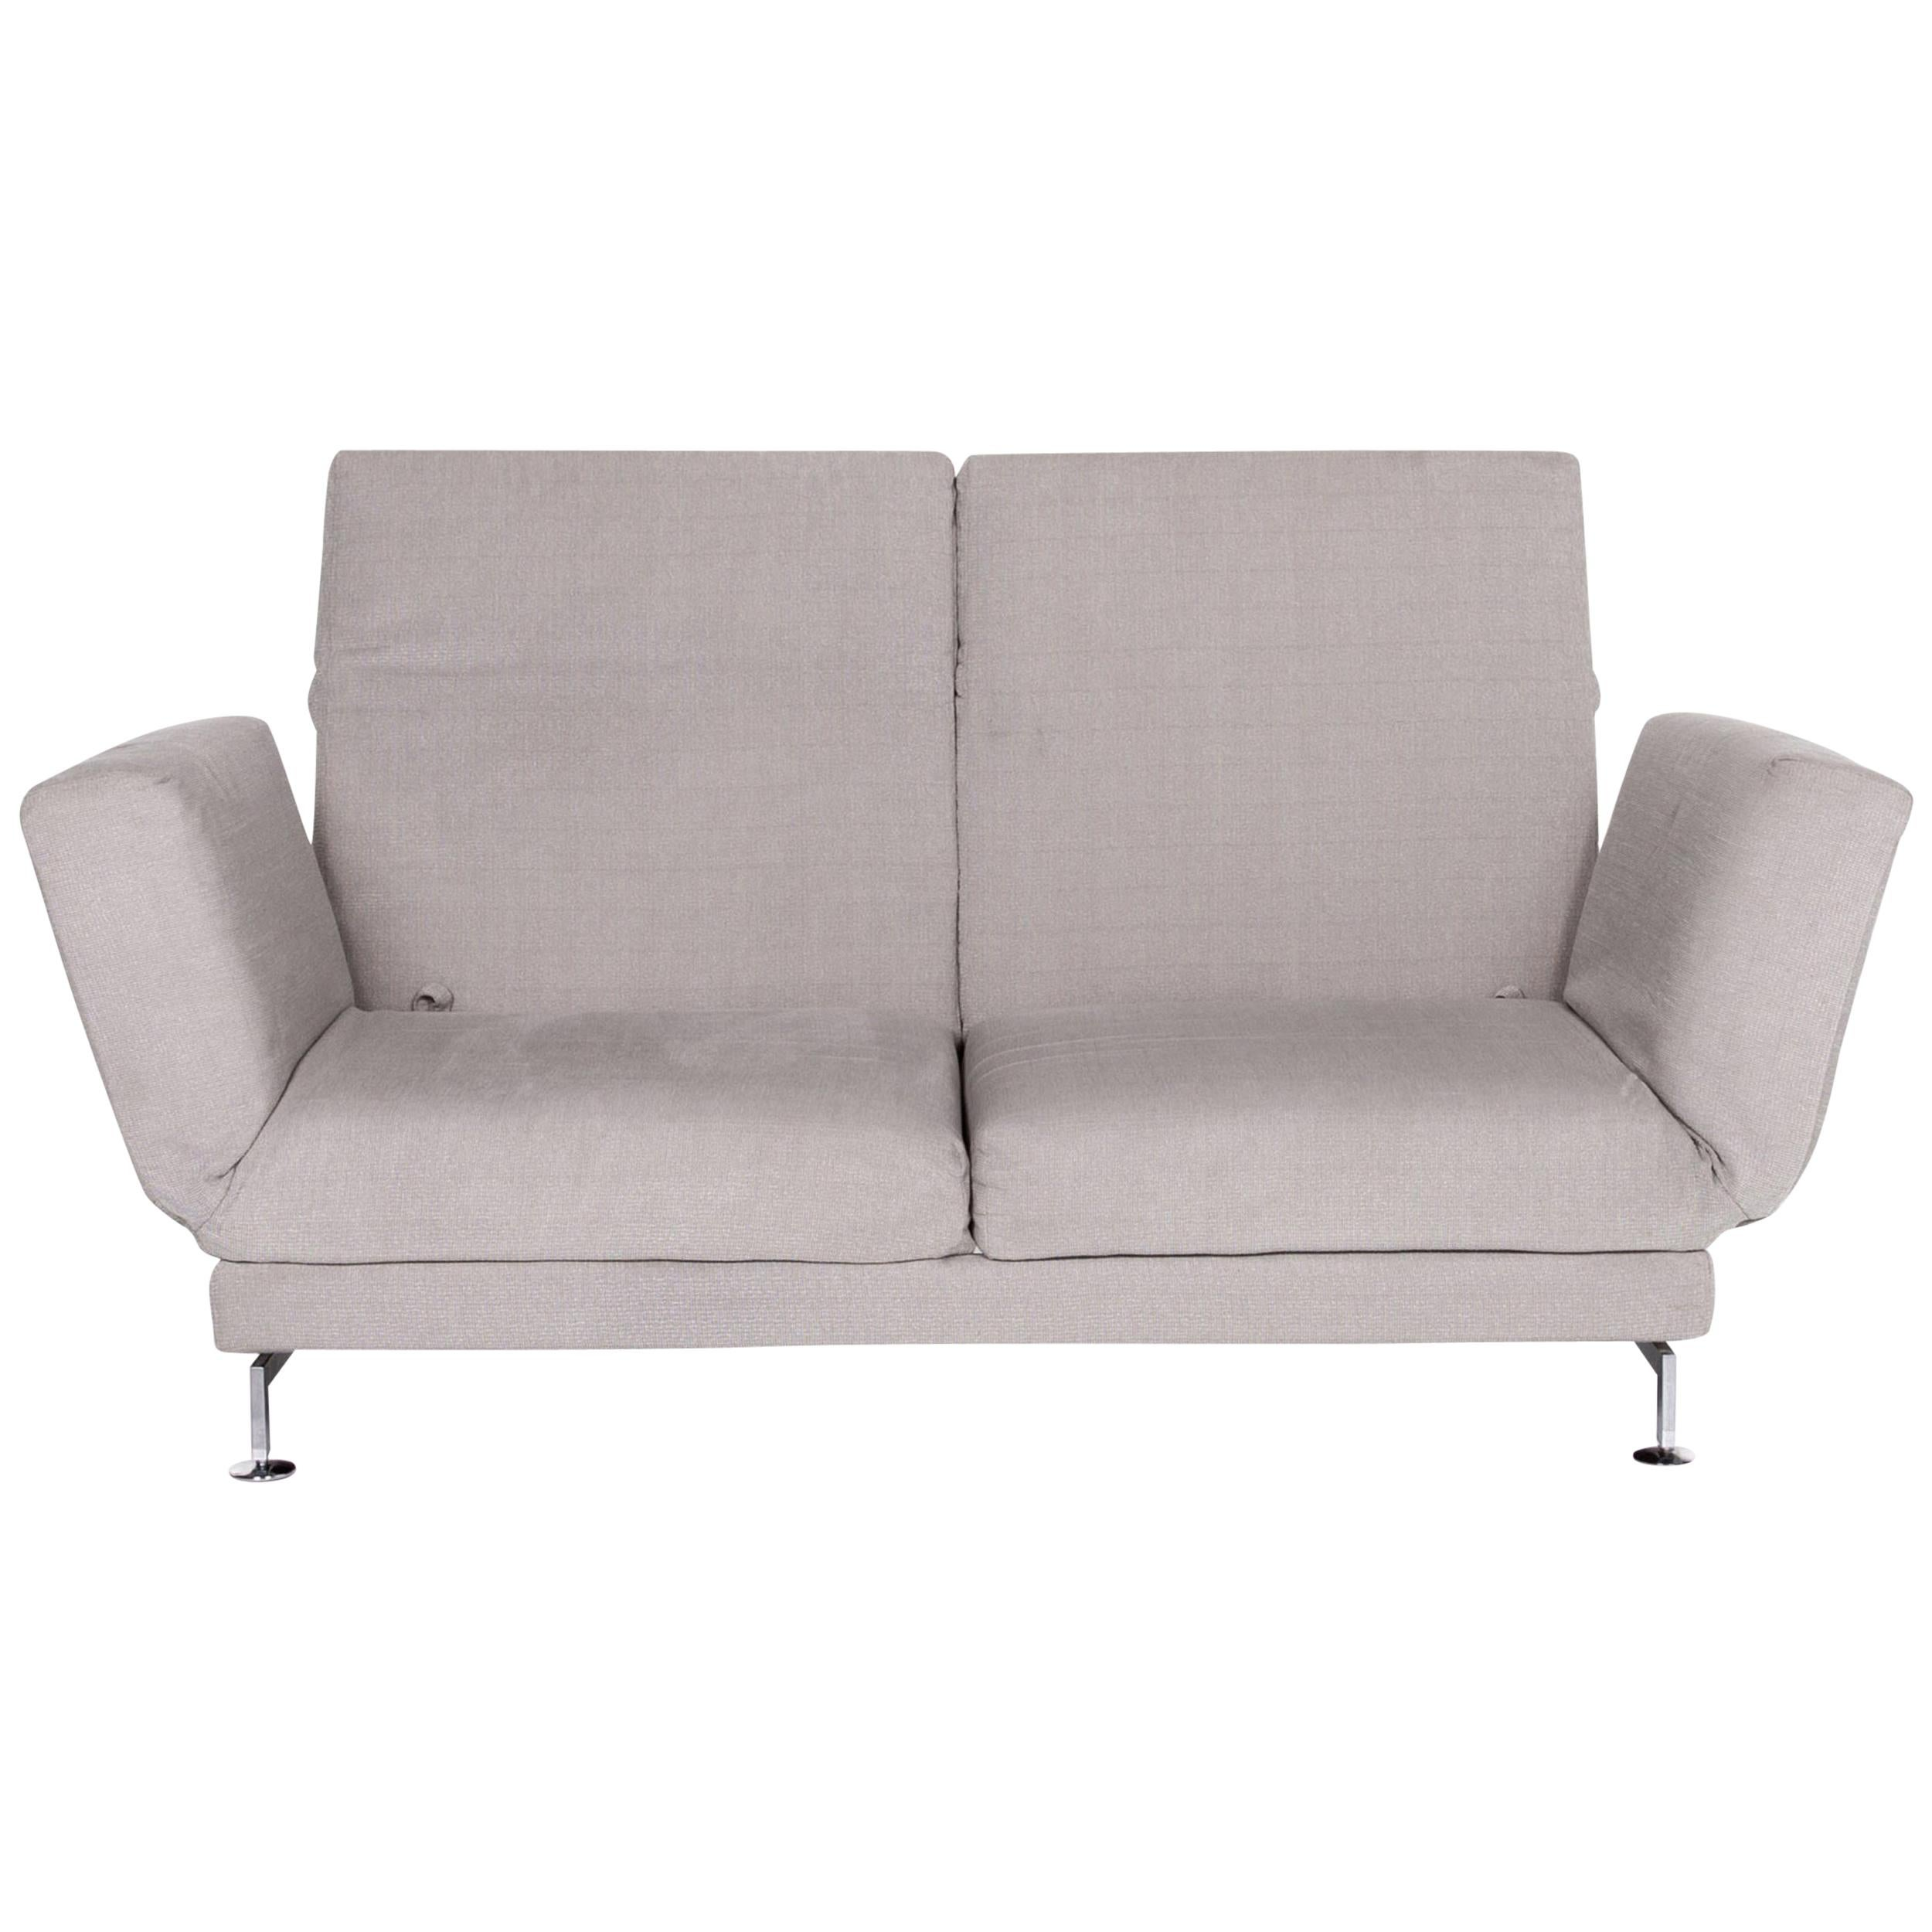 Brühl & Sippold Moule Fabric Sofa Gray Two-Seat Function Relax Function